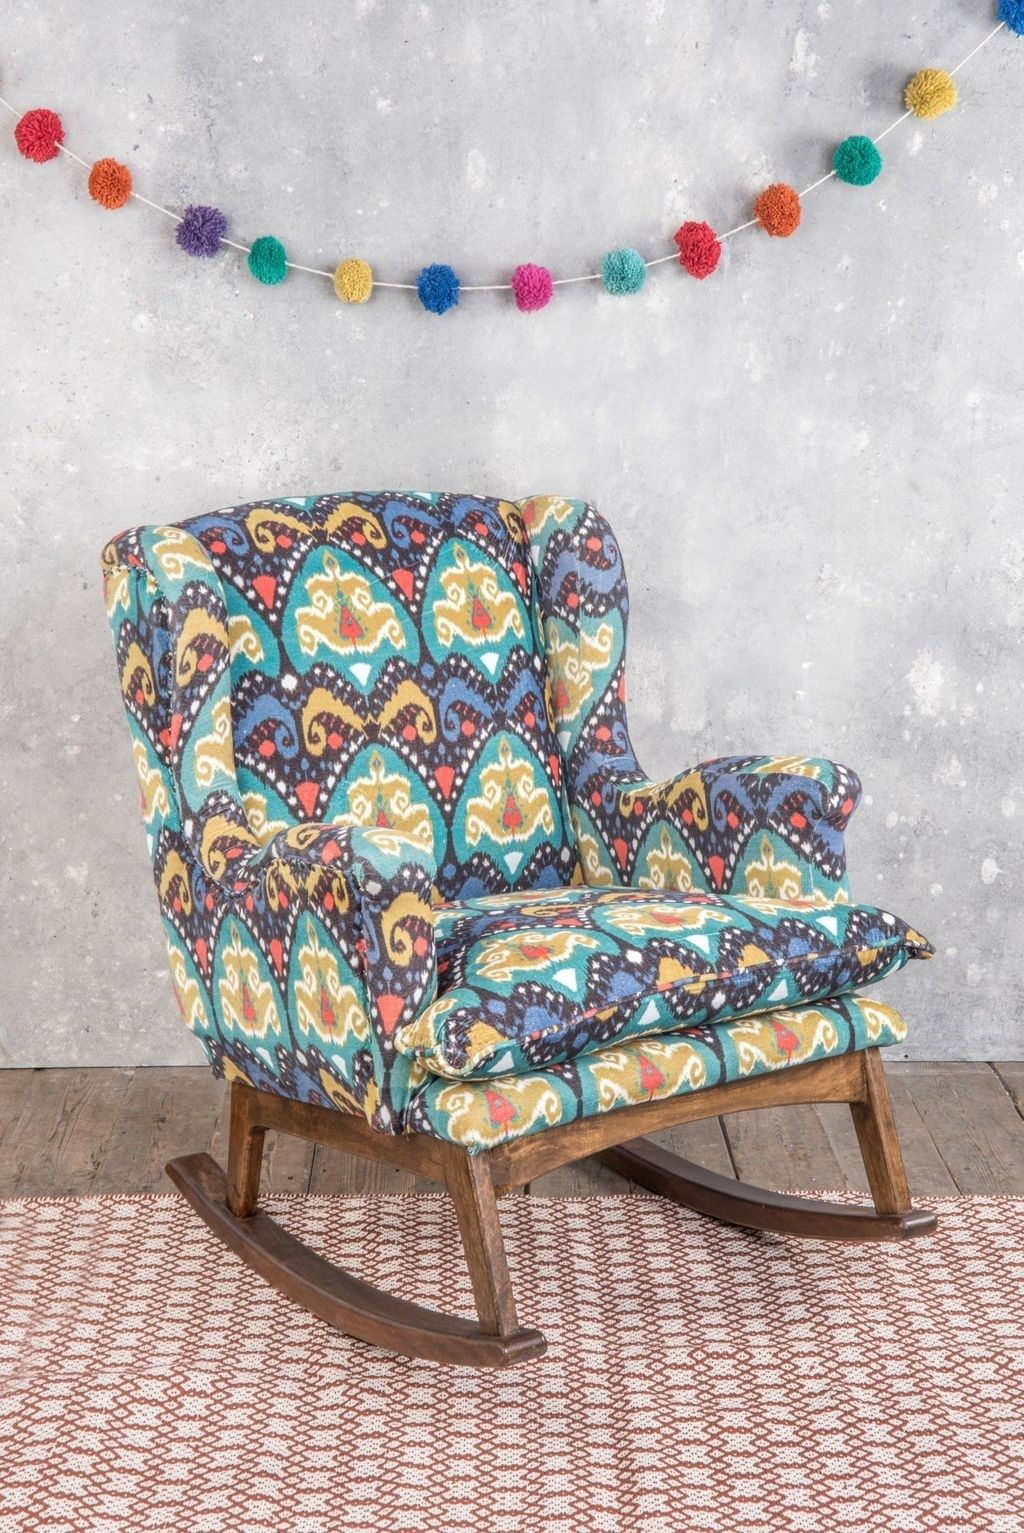 Awesome contemporary rocking chairs design ideas 20